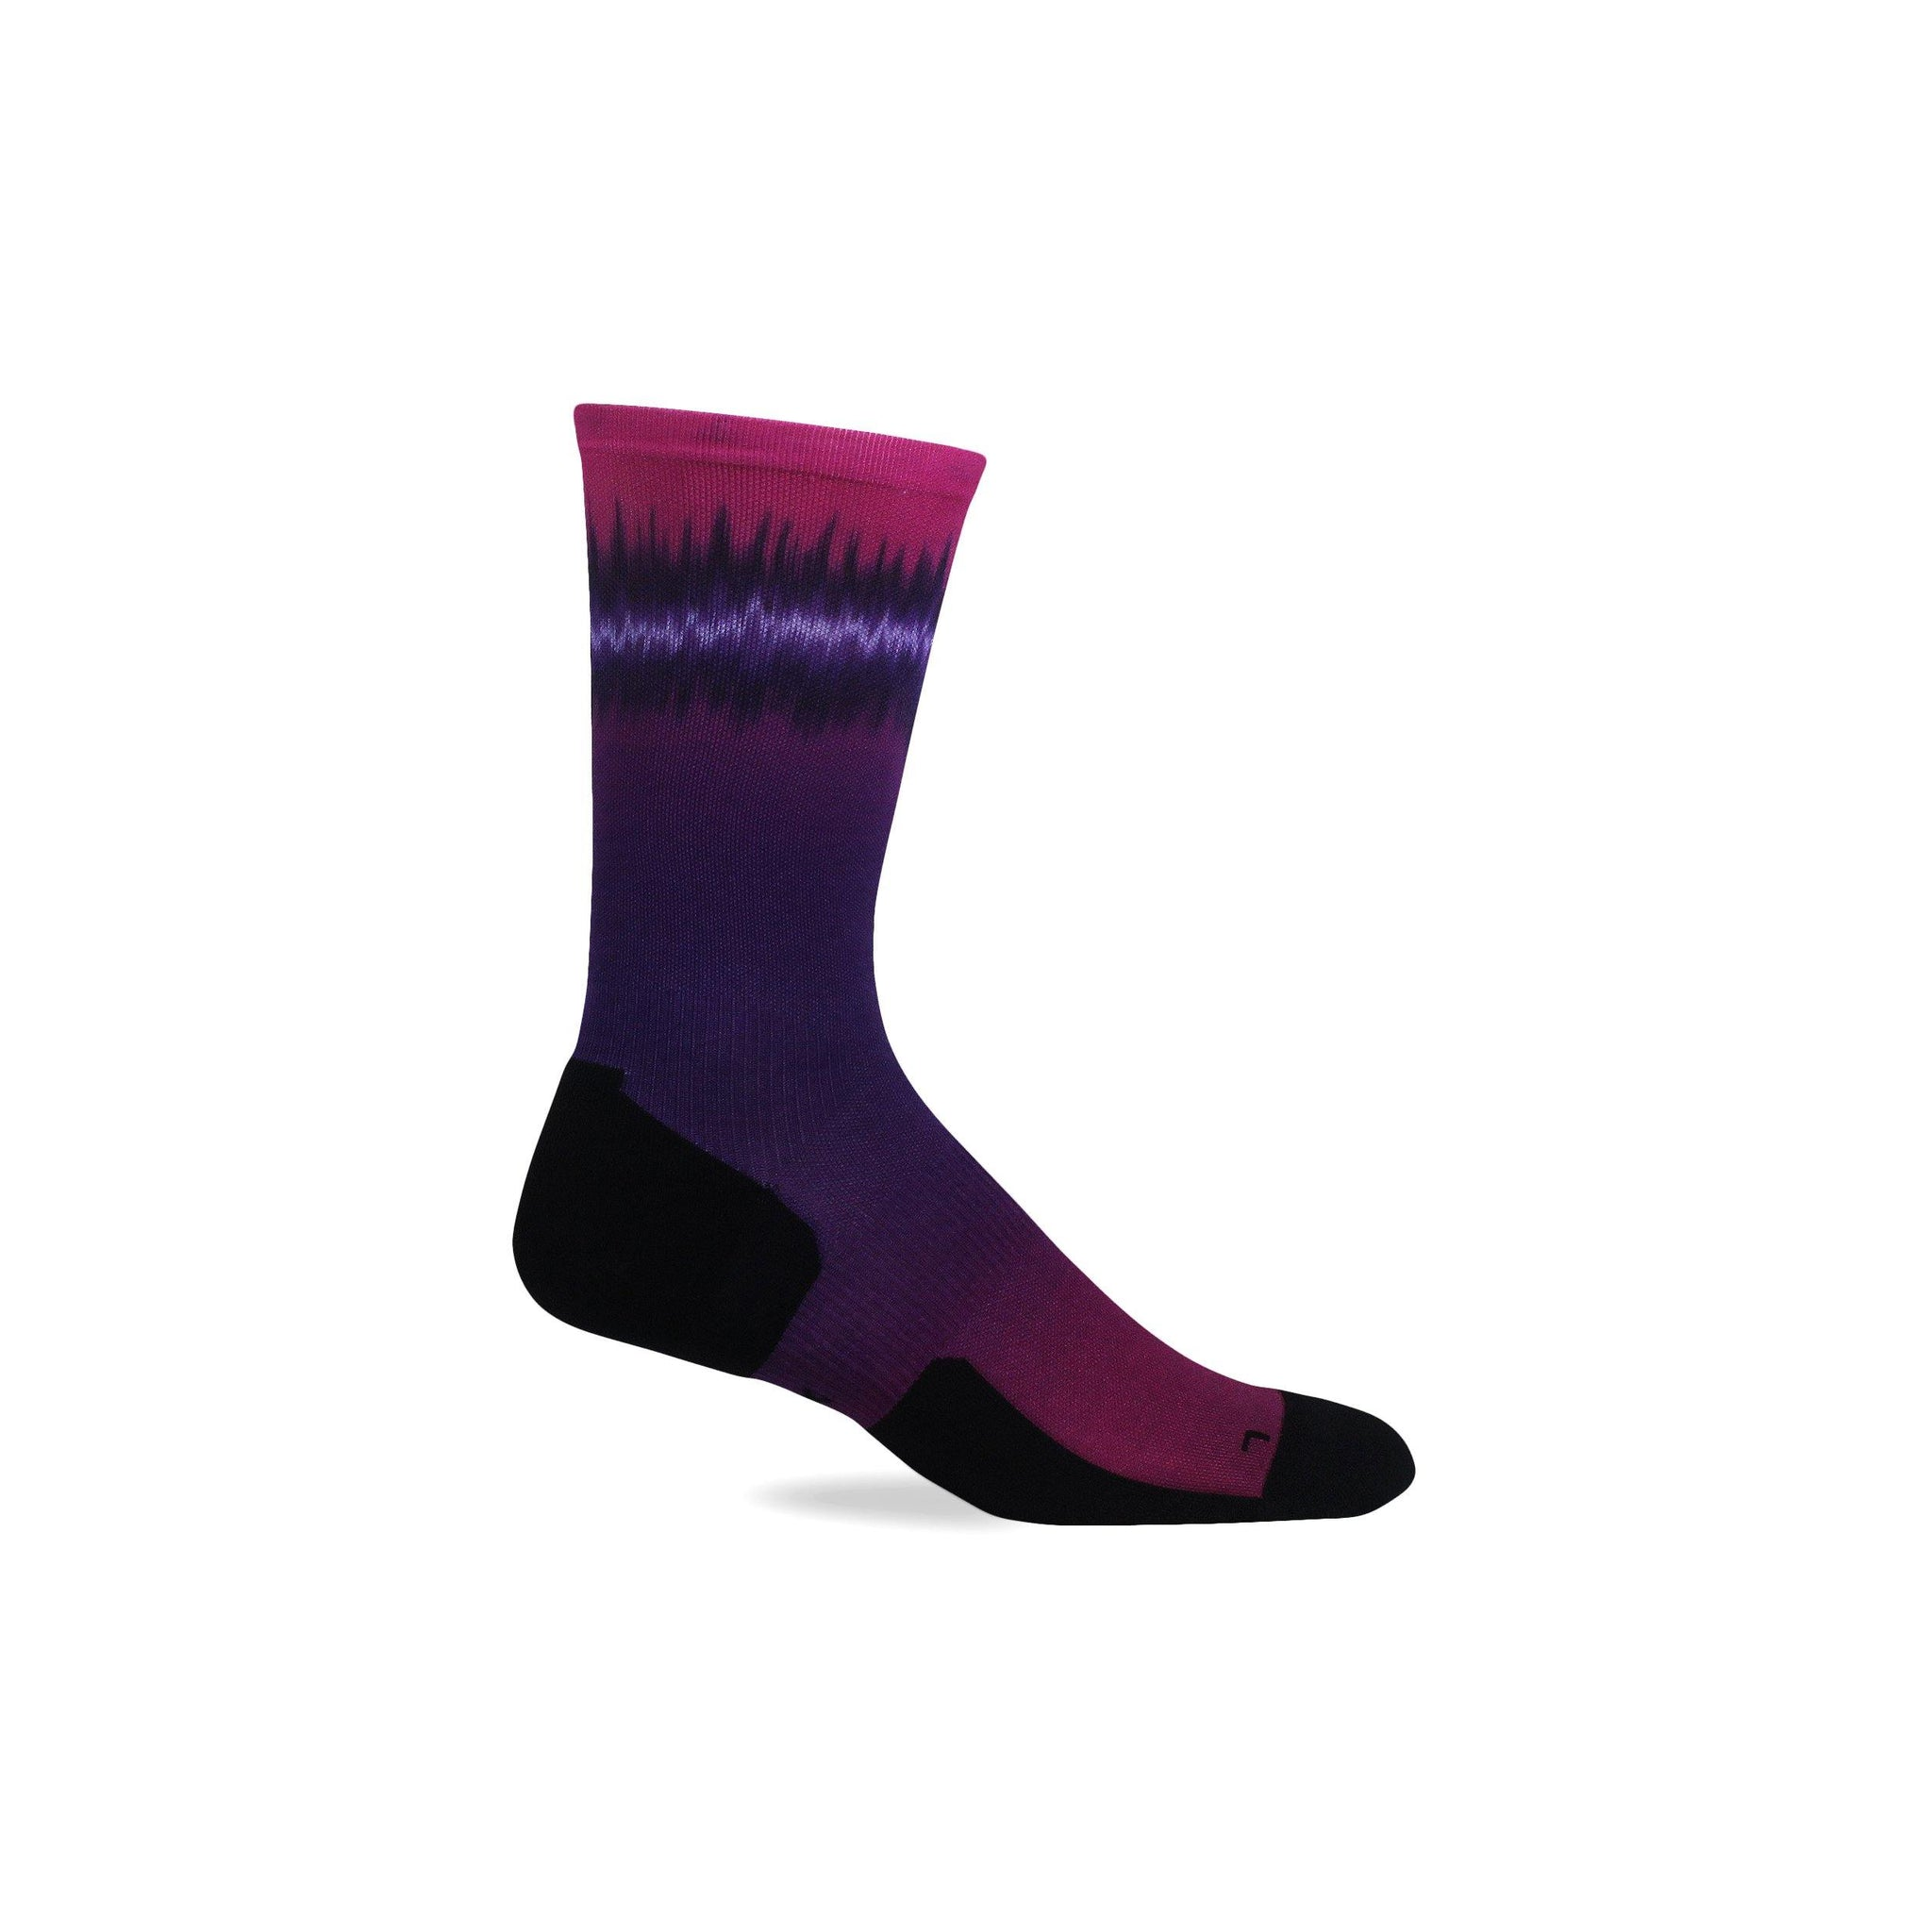 Run Crew Compression Socks - Soundwave